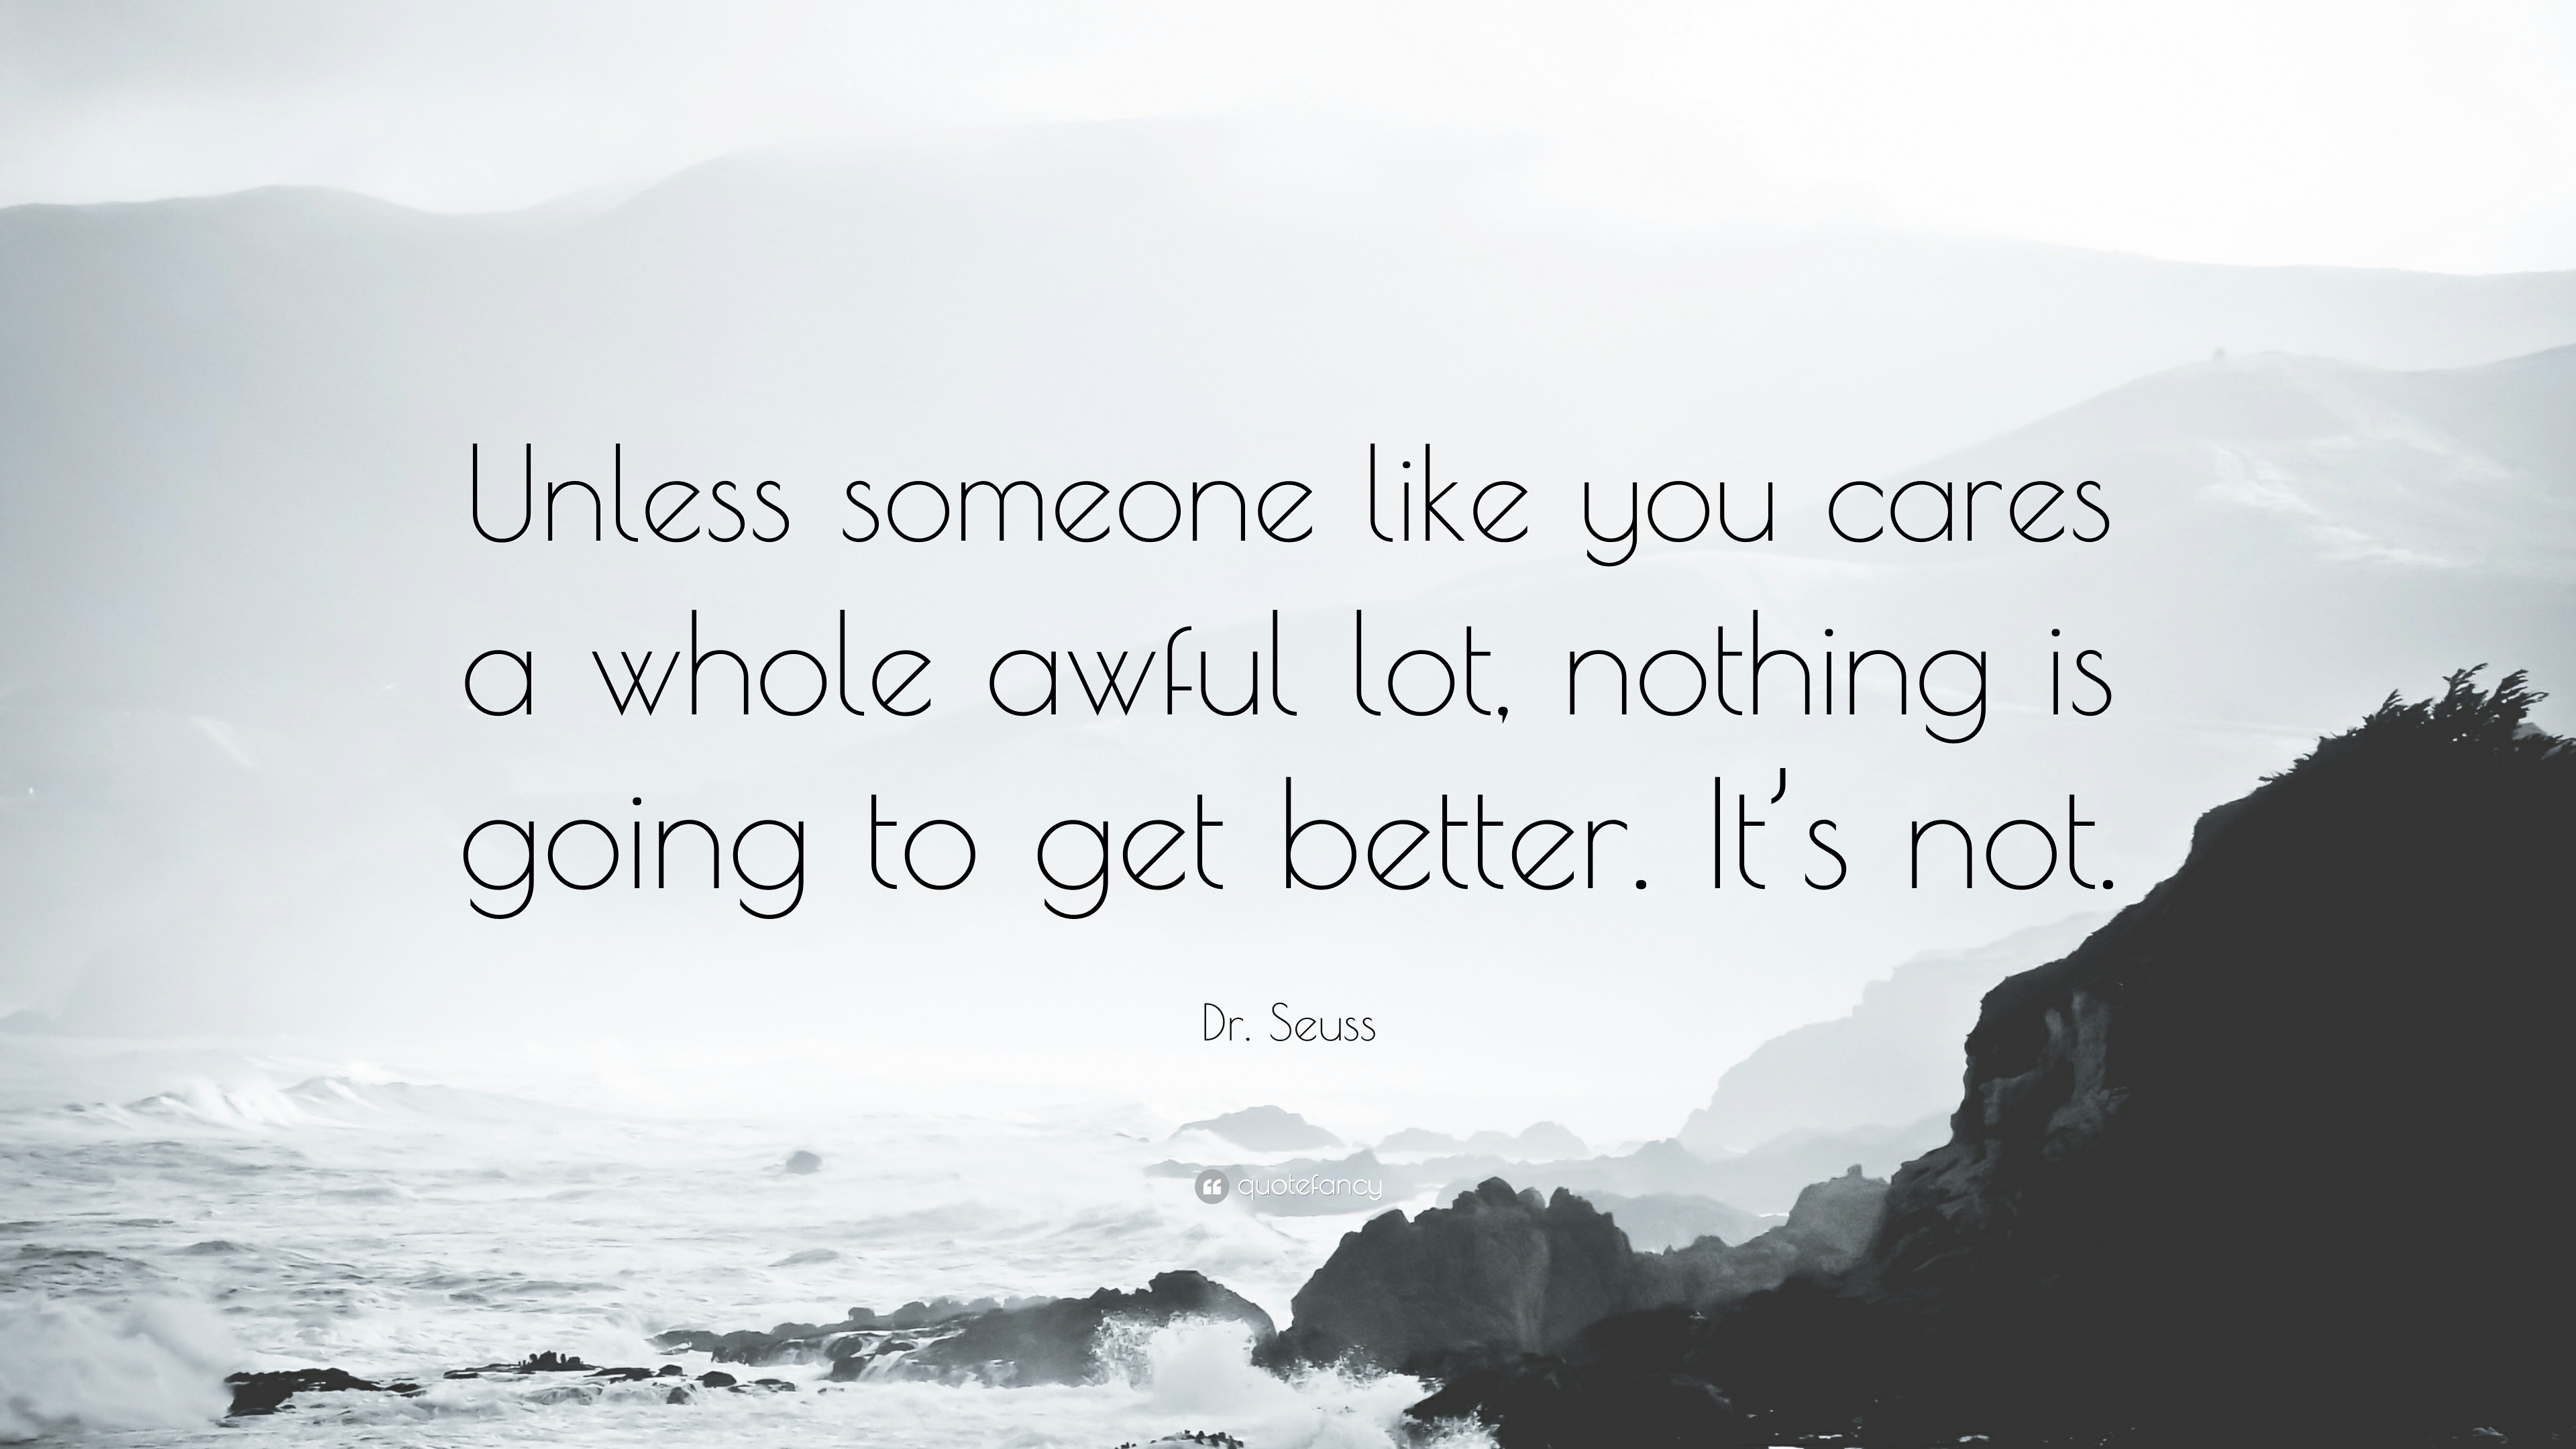 28839-Dr-Seuss-Quote-Unless-someone-like-you-cares-a-whole-awful-lot.jpg